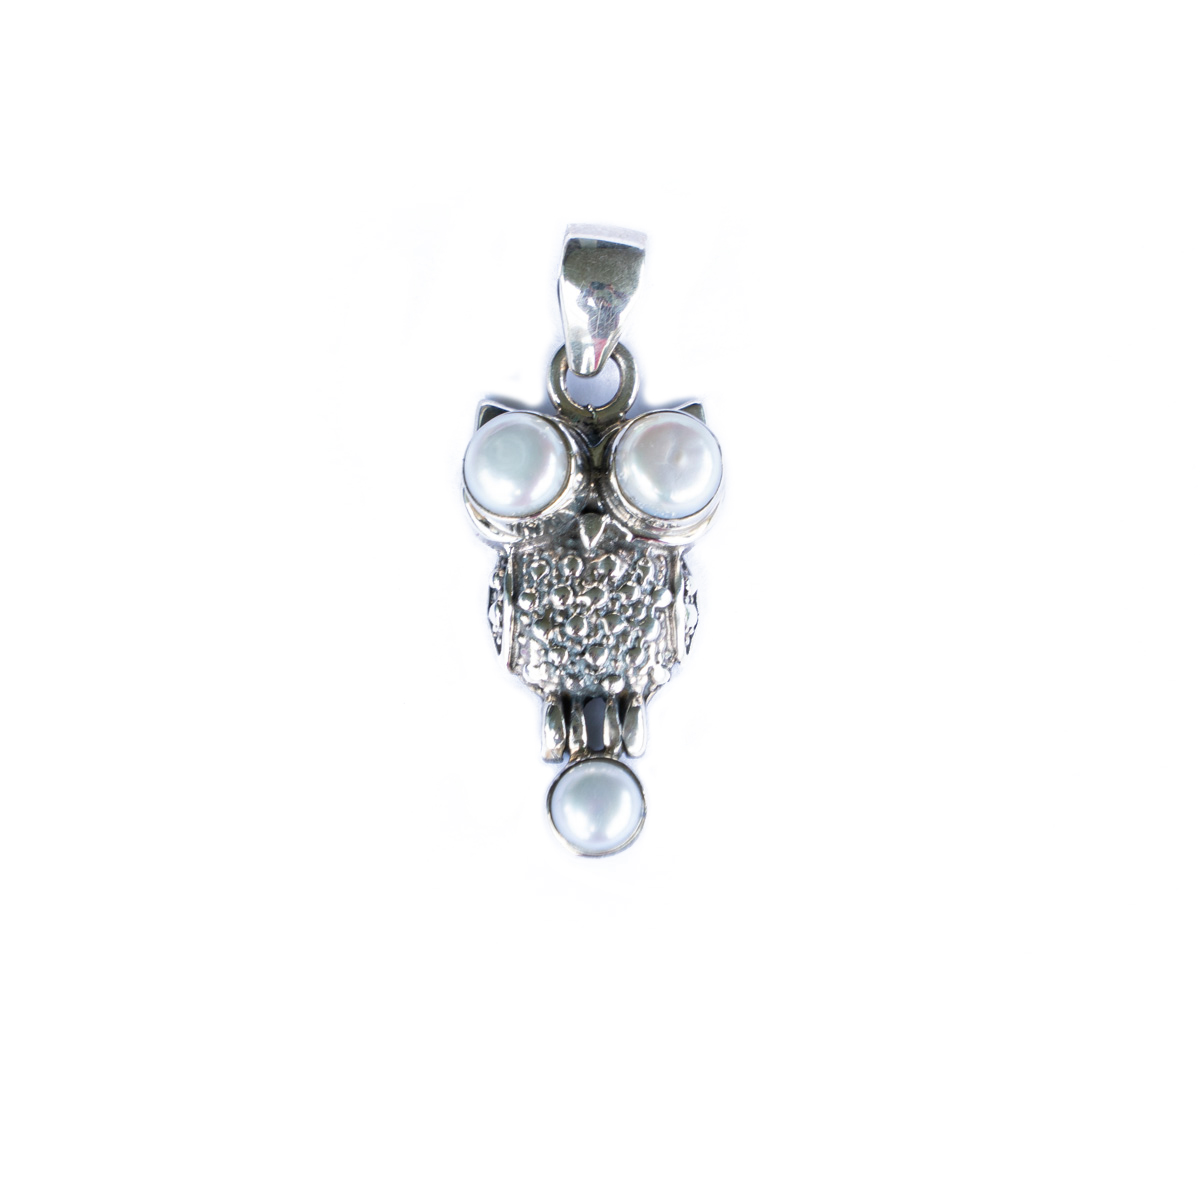 Sri Avinash Infused™ 3.8cts Pearl Owl Pendant Pendant in Sterling Silver - Creative Power Infusion